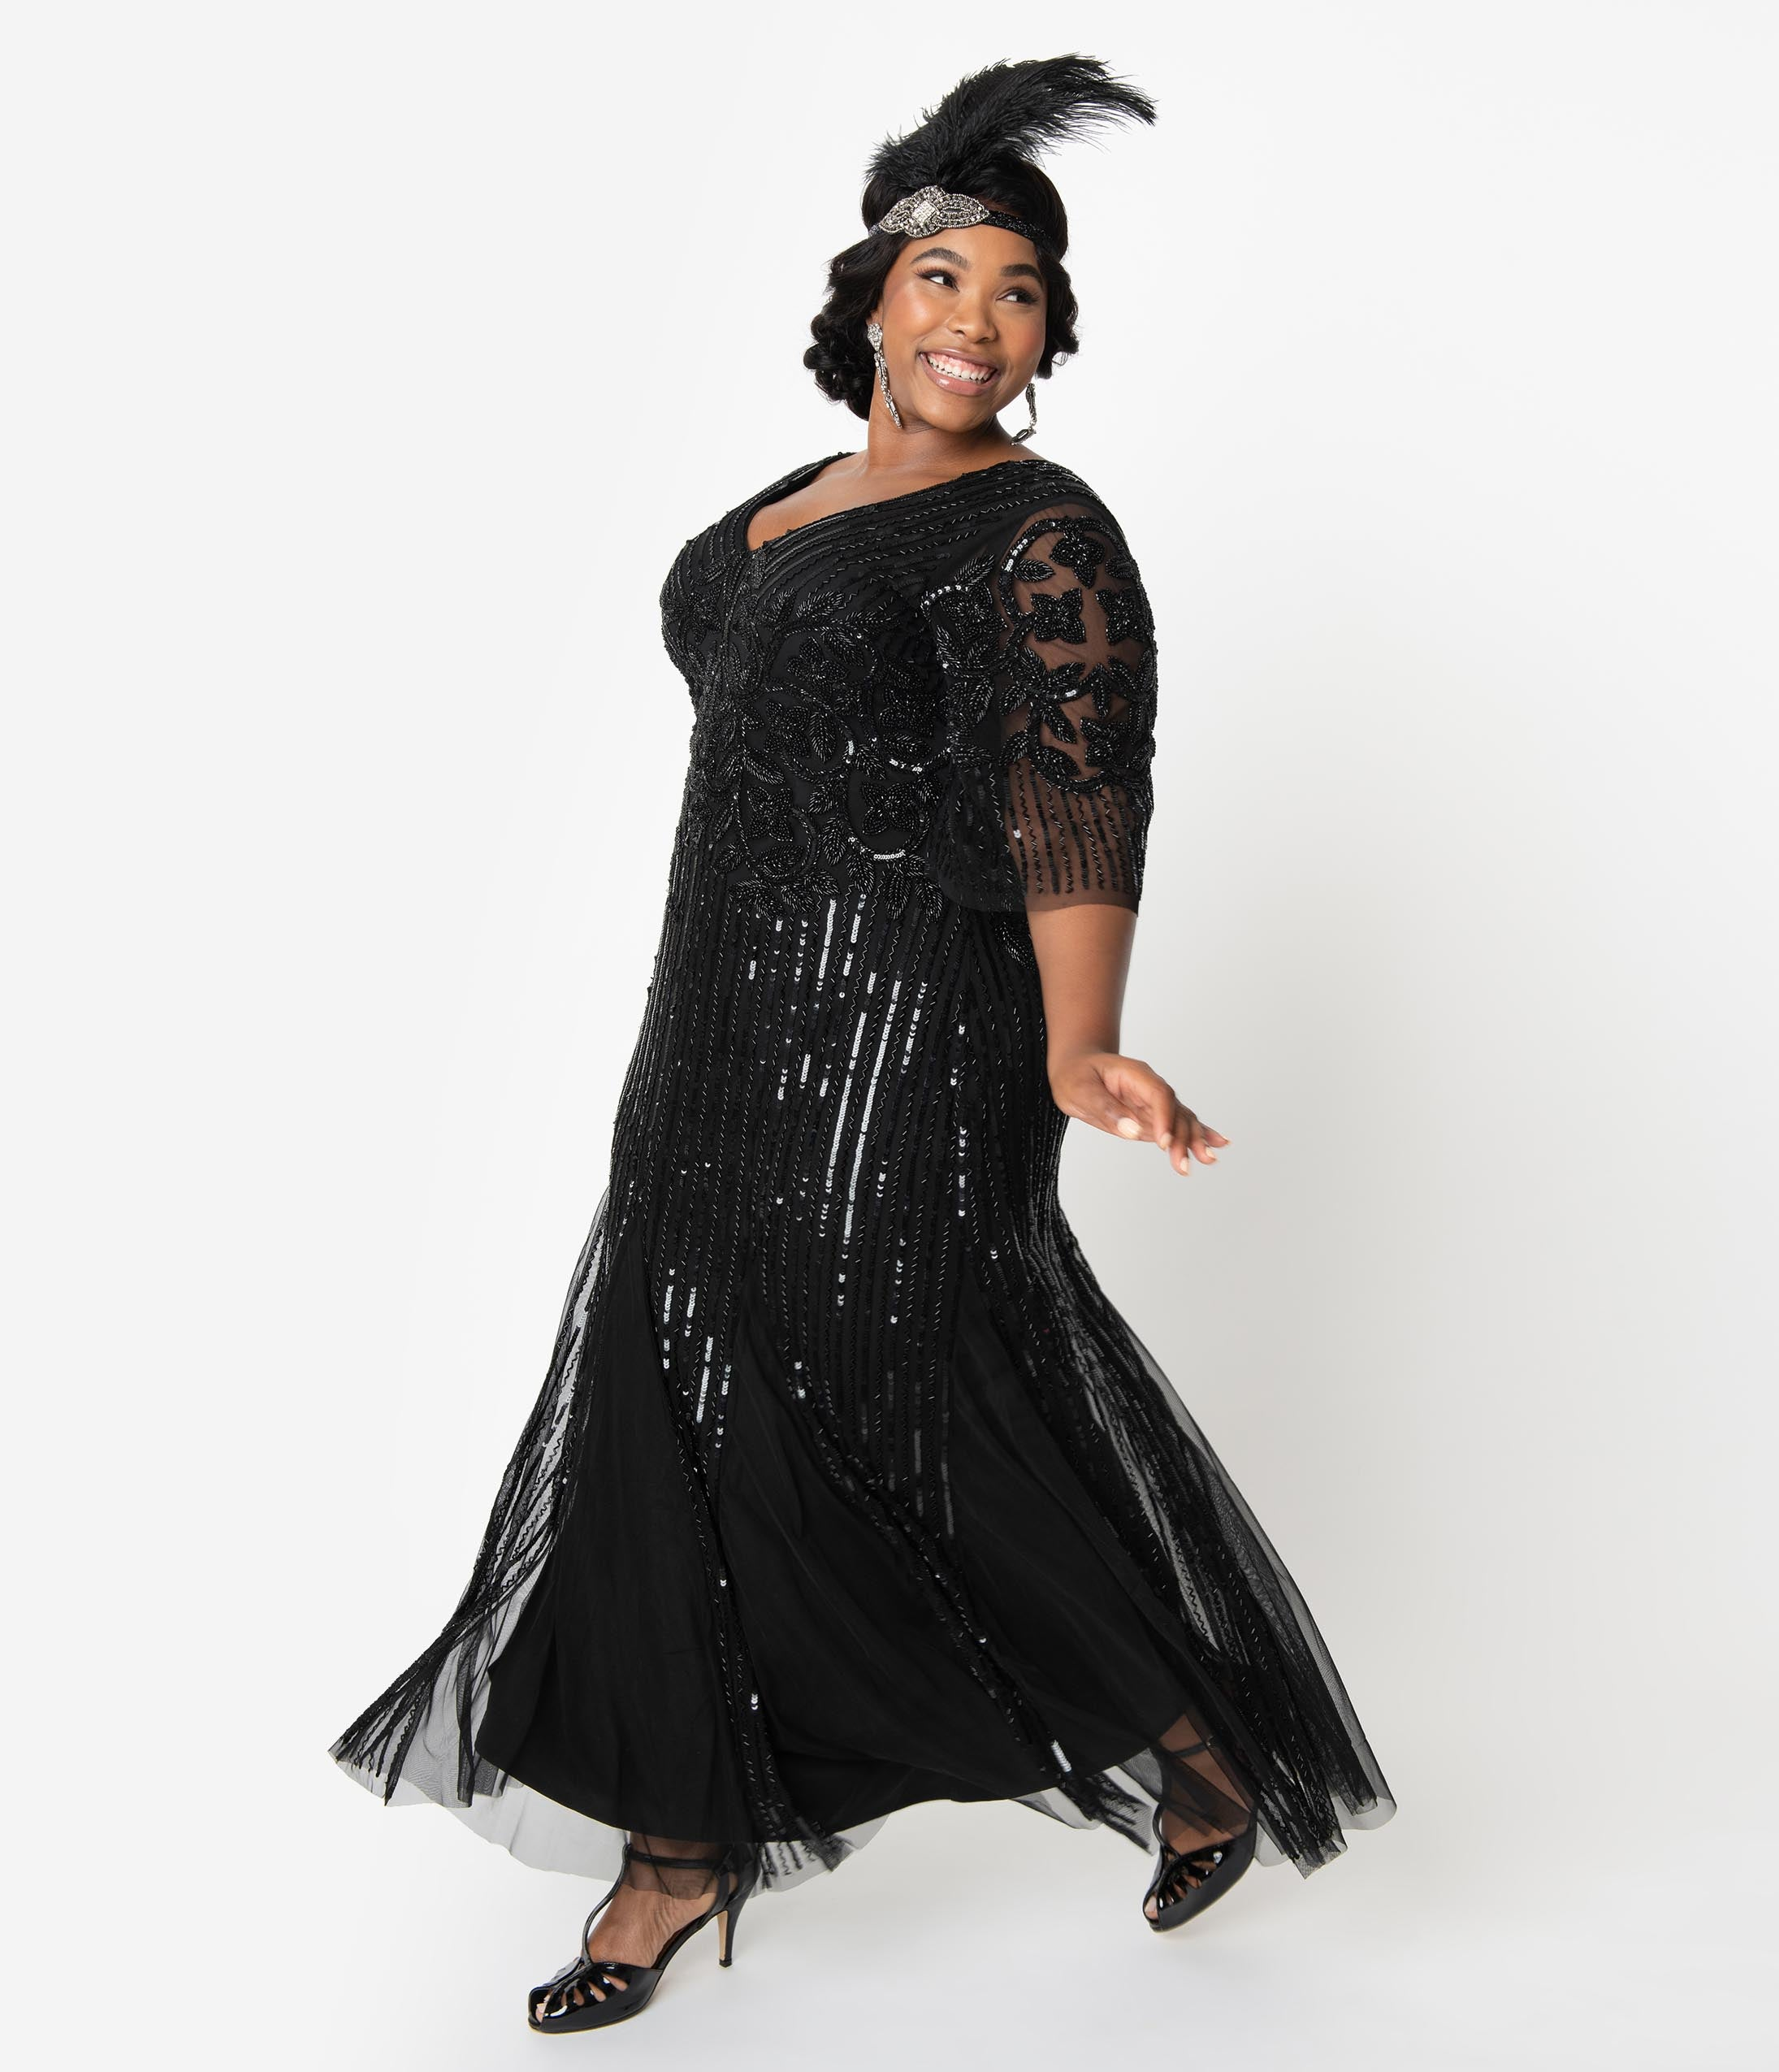 Flapper Costume: How to Dress Like a 20s Flapper Girl Plus Size 1920S Style Black Beaded Sleeved Norma Flapper Gown $268.00 AT vintagedancer.com